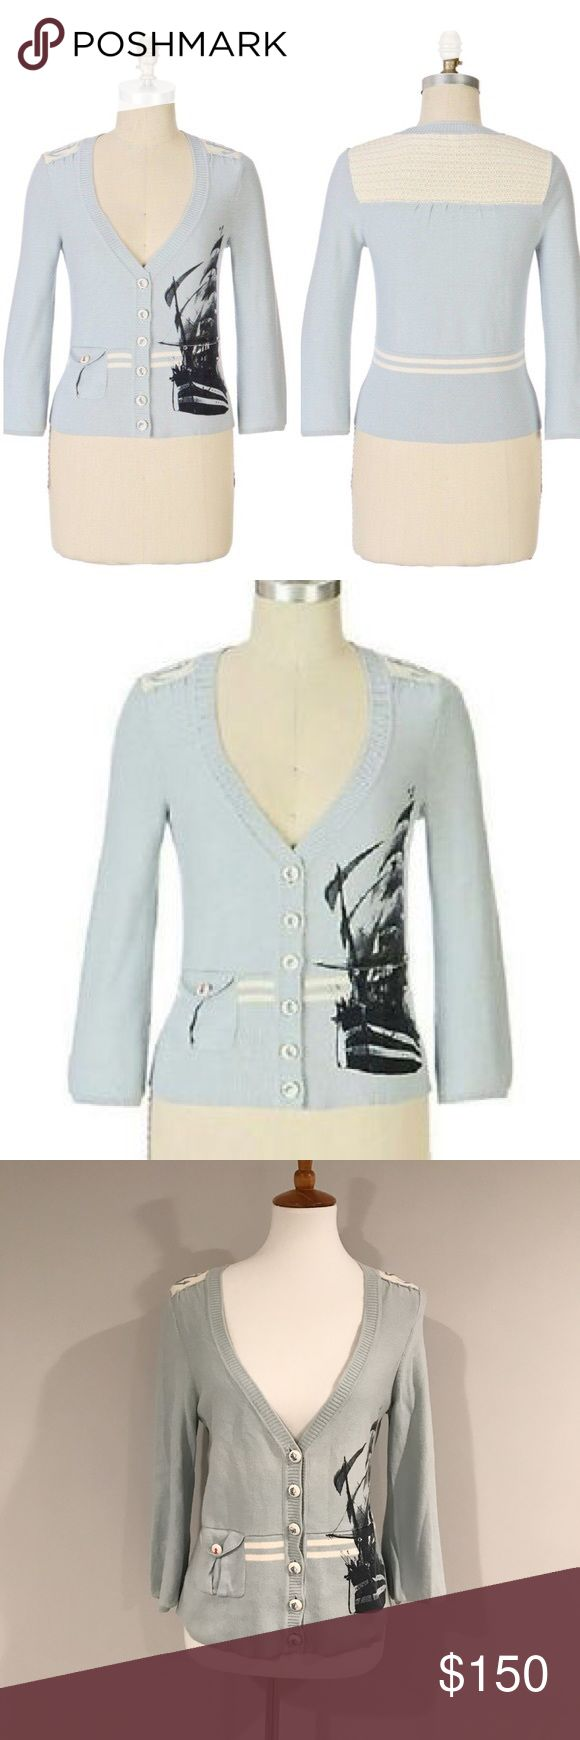 Anthropologie Nautical Cardigan Cotton cardigan by Anthropologie brand Moth. Features lace back panel, three quarter bell sleeves, and cropped fit. Excellent used condition! Very rare! Anthropologie Sweaters Cardigans